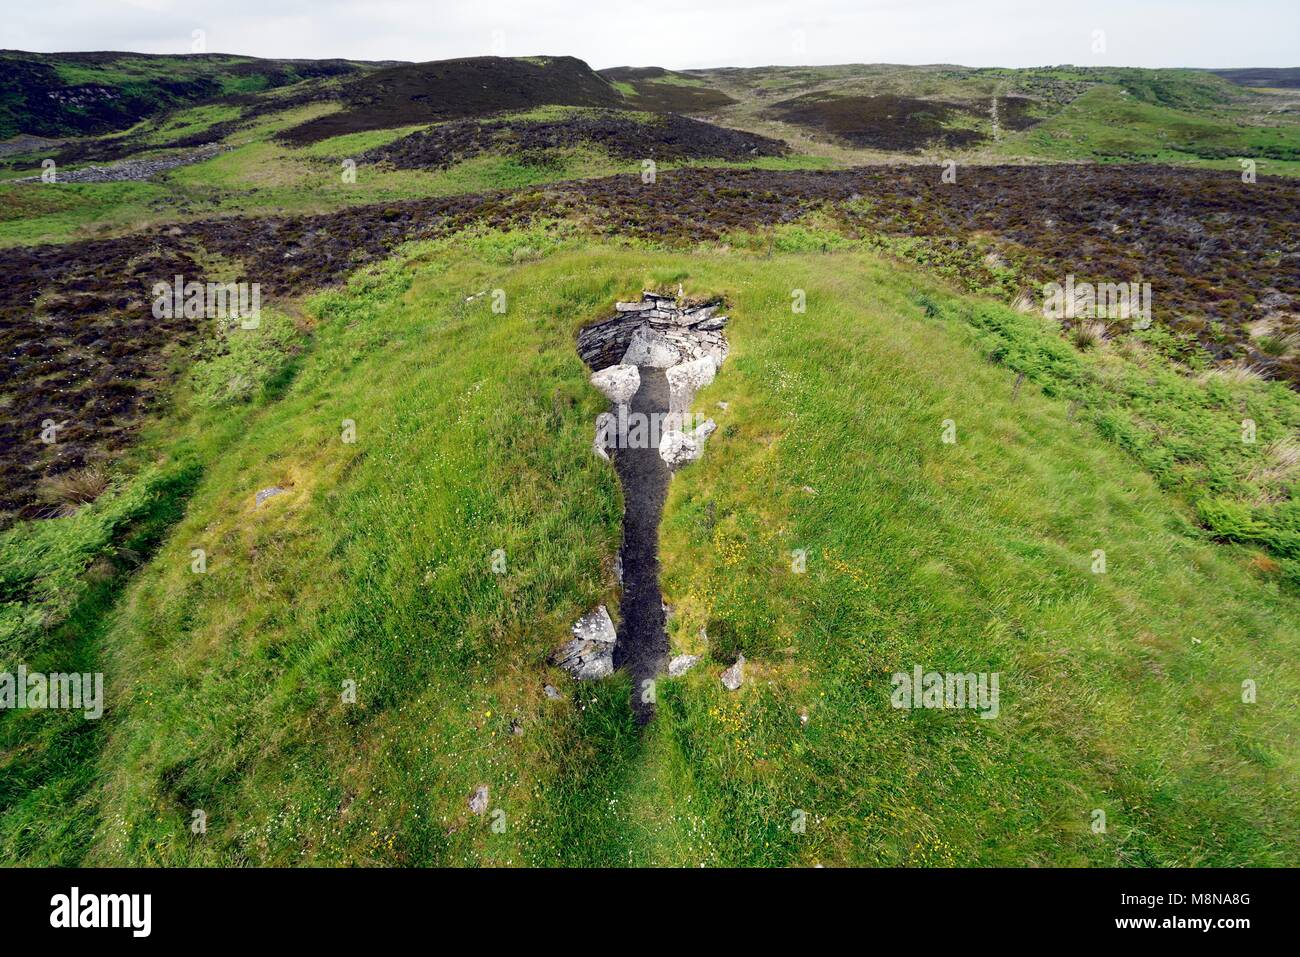 The Cairn of Get 5000 year prehistoric tomb burial chambered cairn. Whaligoe, Caithness, Scotland - Stock Image